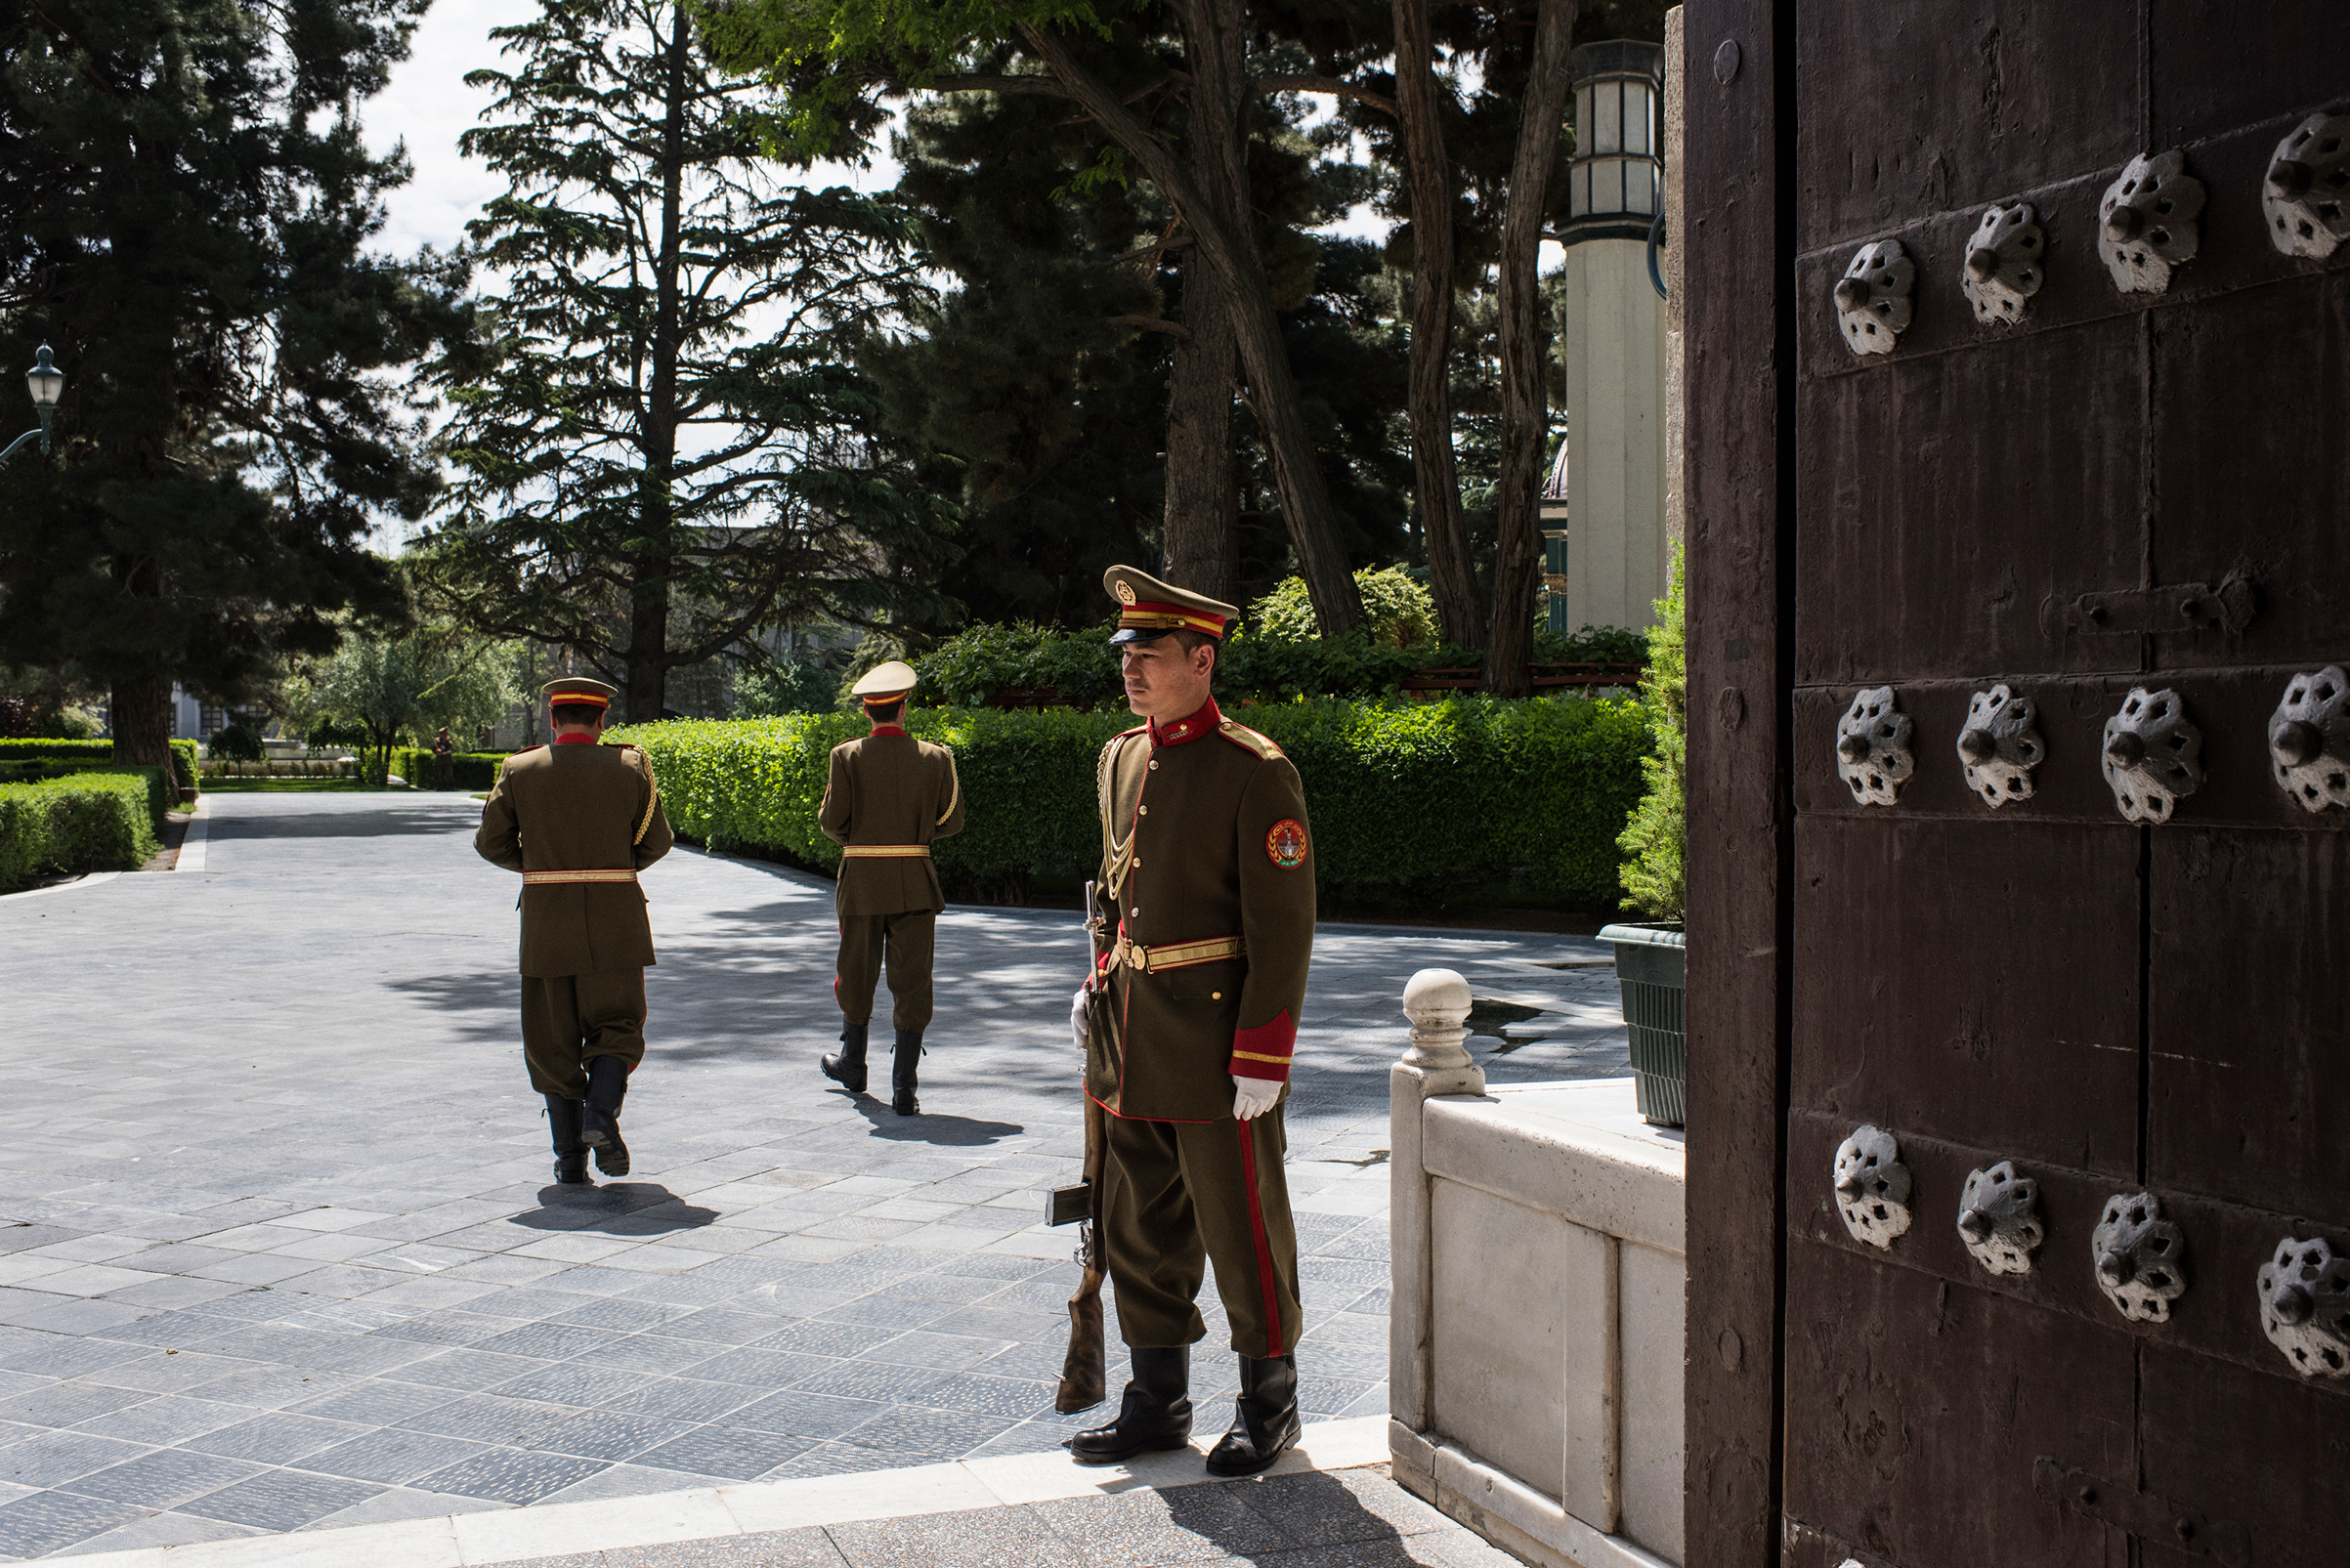 A presidential guard stands watch inside the palace compound in Kabul on May 11.